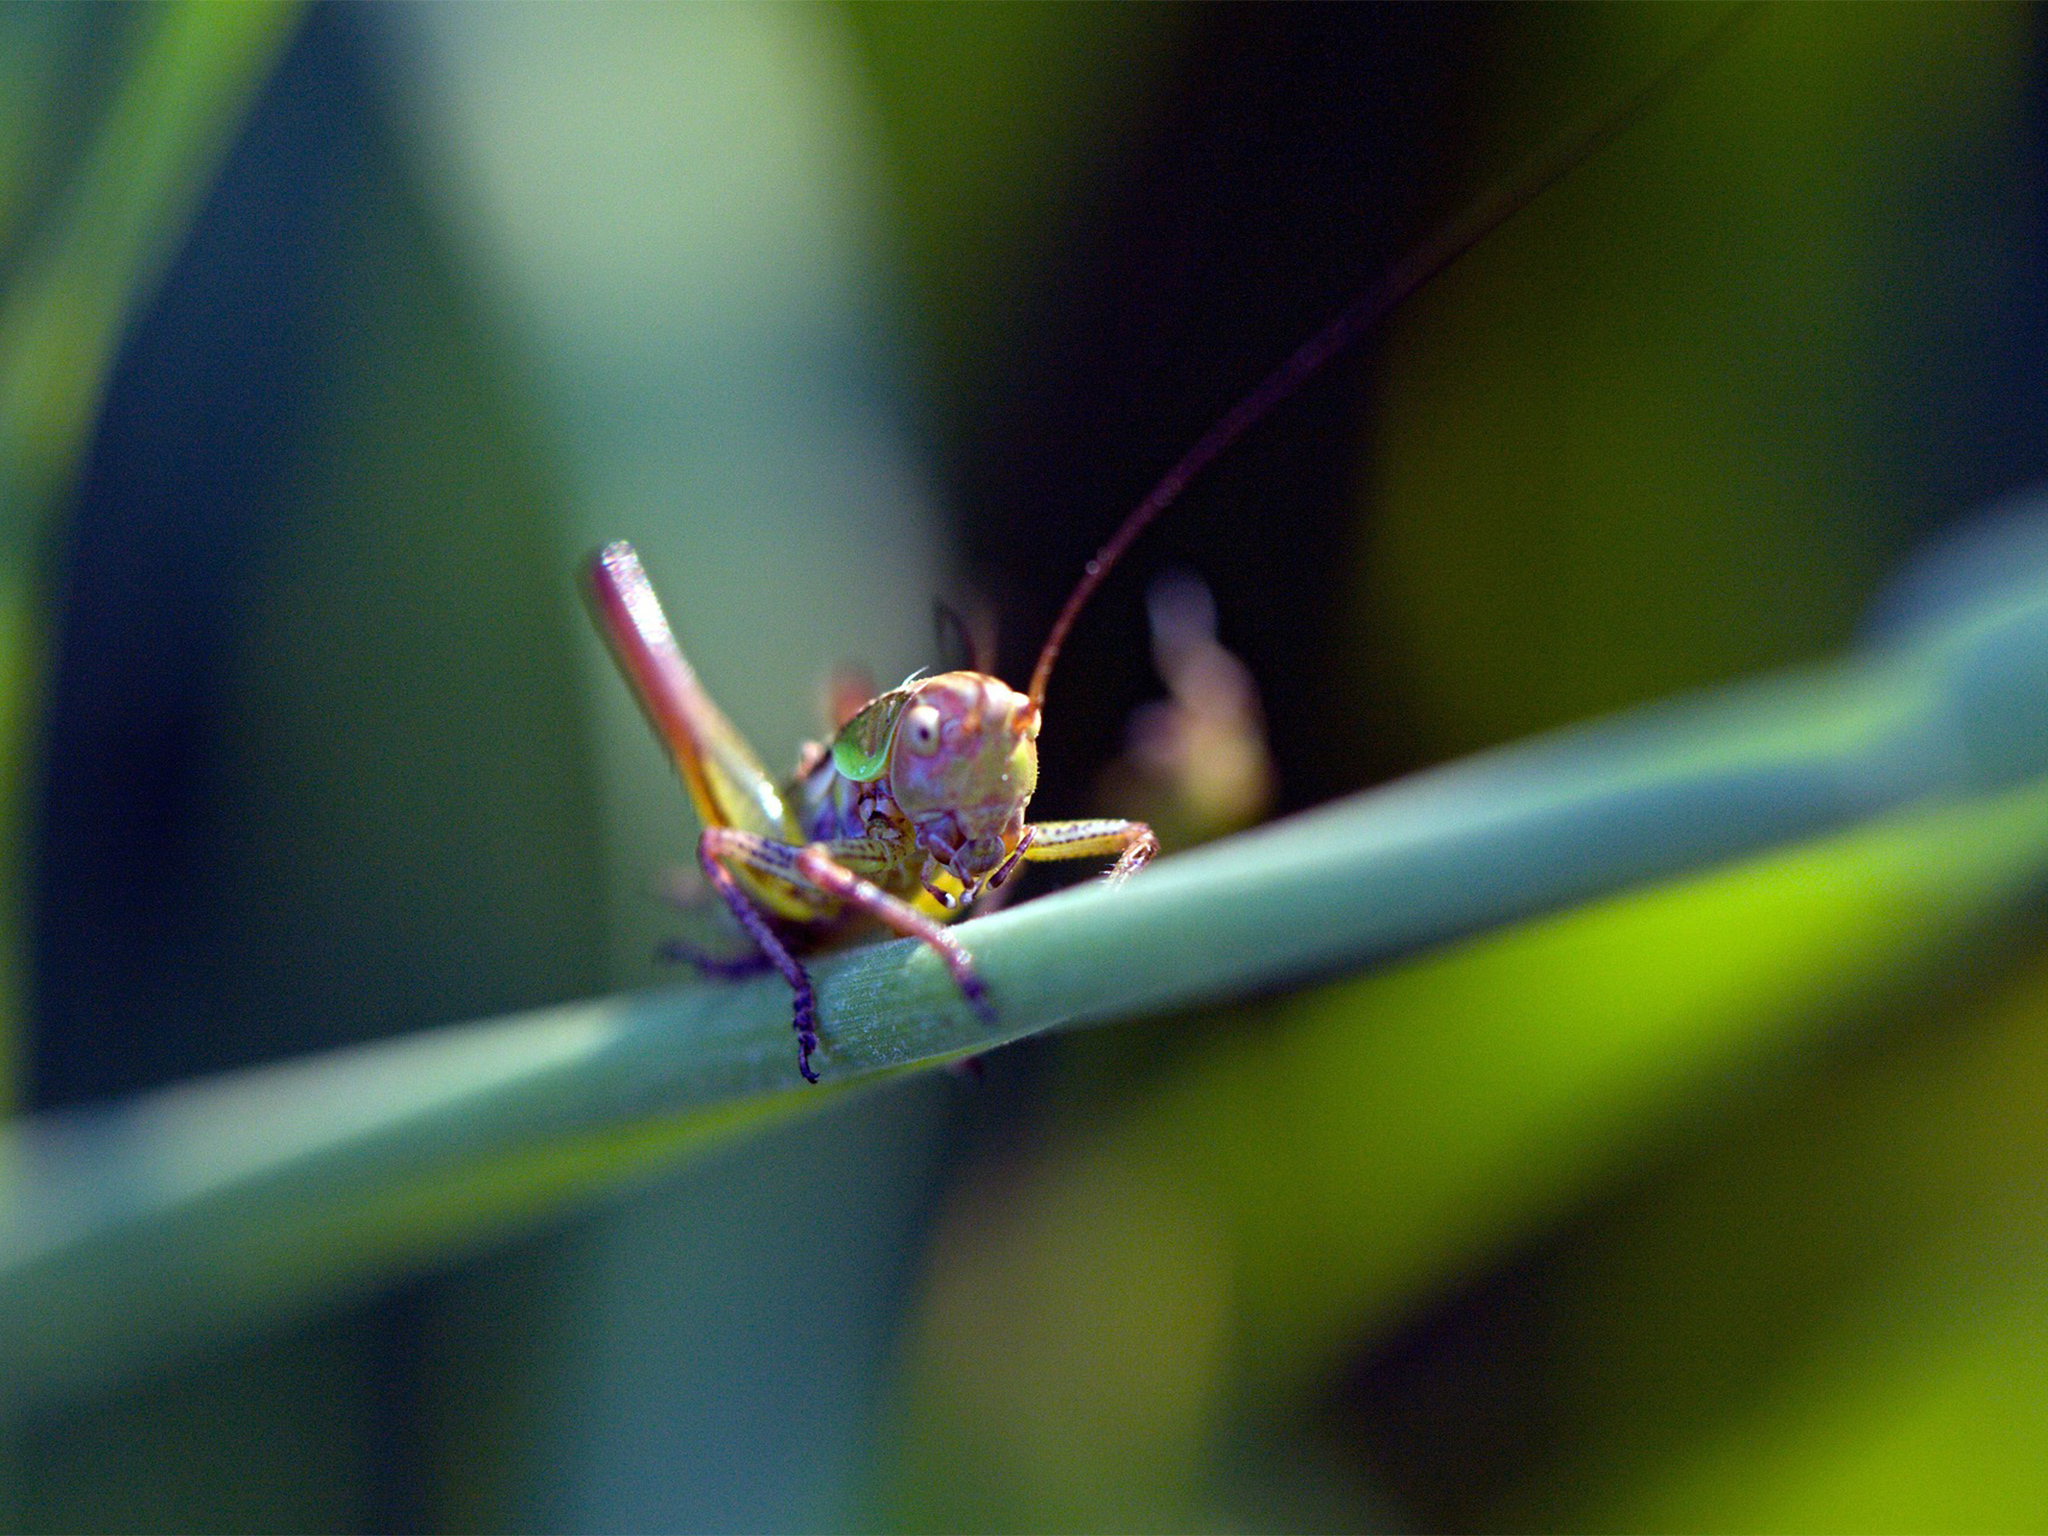 Grasshopper sits on a leaf